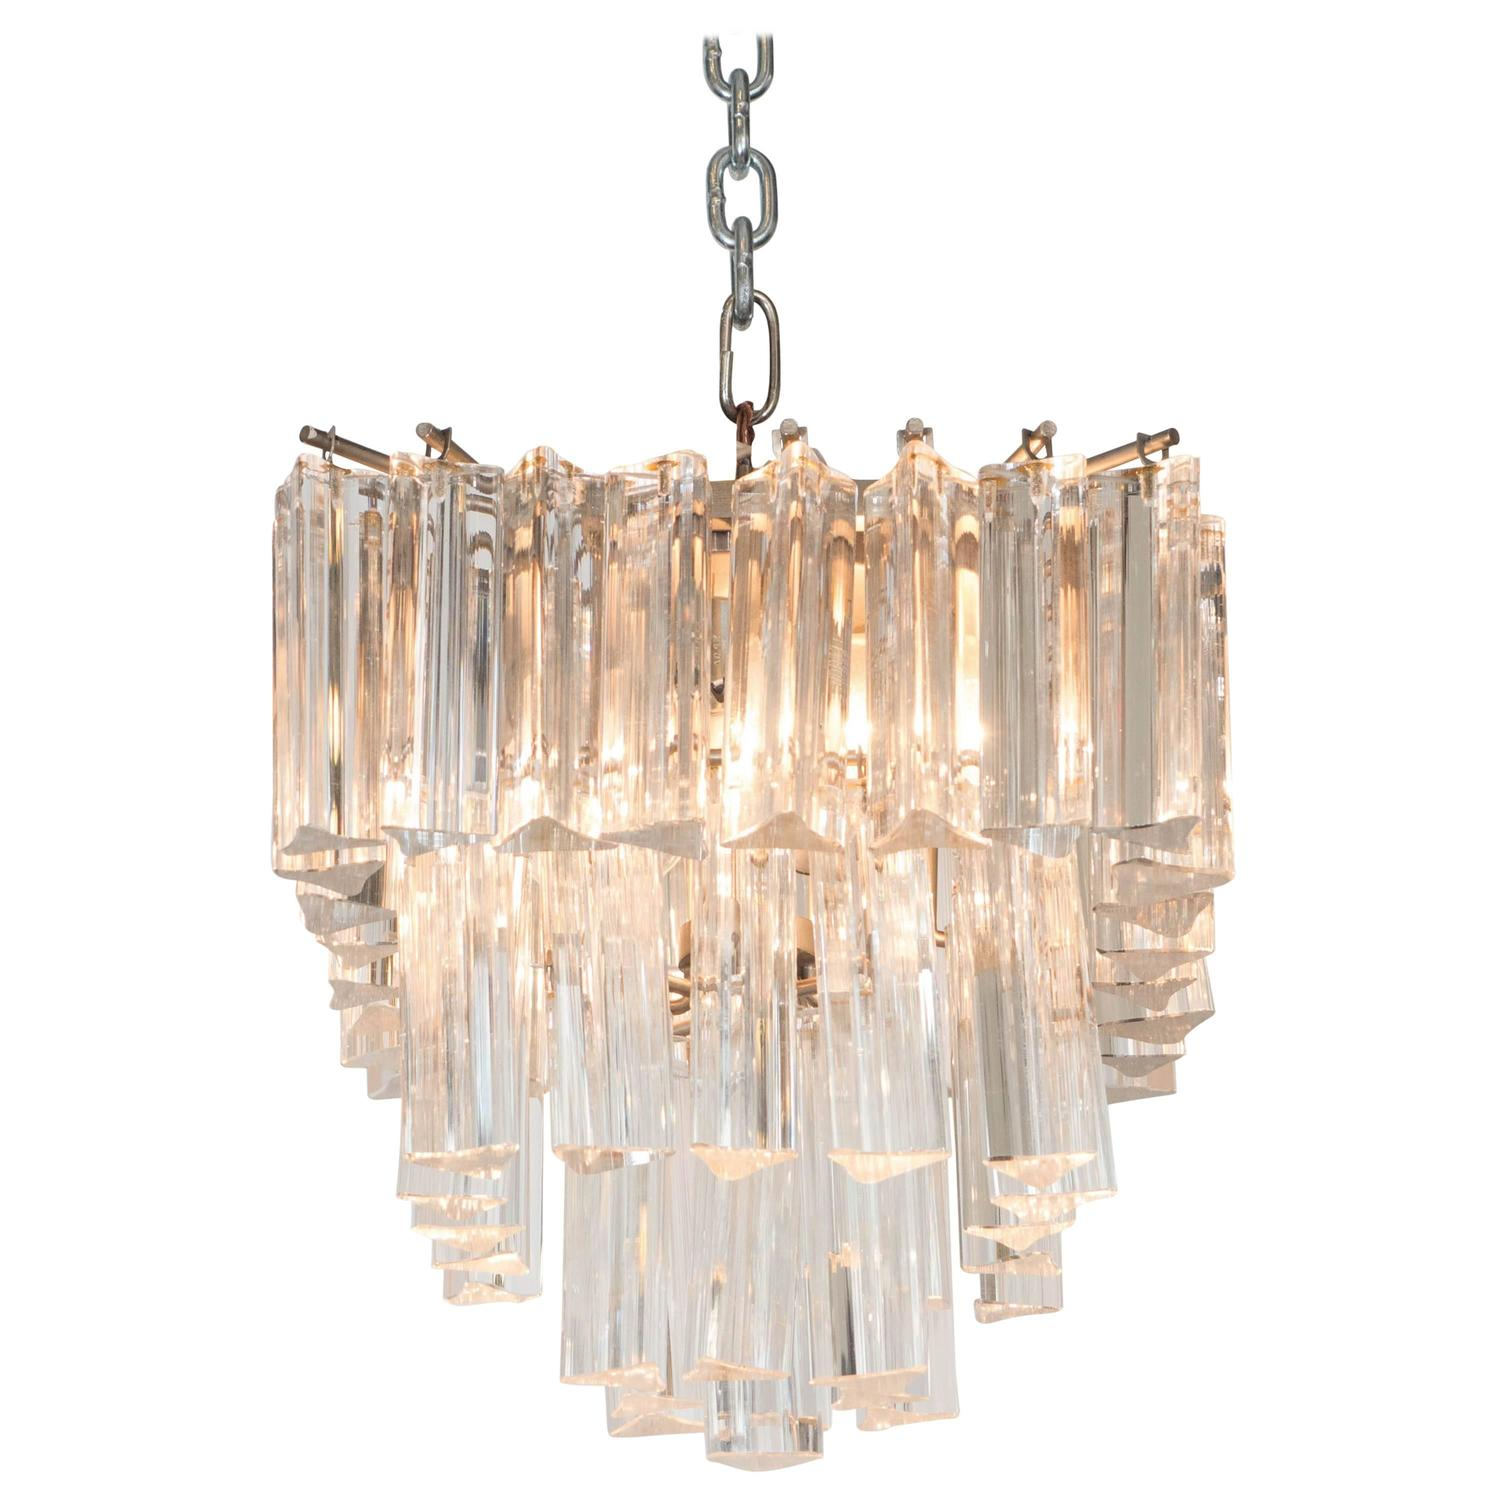 Murano Prism Chandelier: Petite Three-Tier Venini Chandelier With Murano Glass